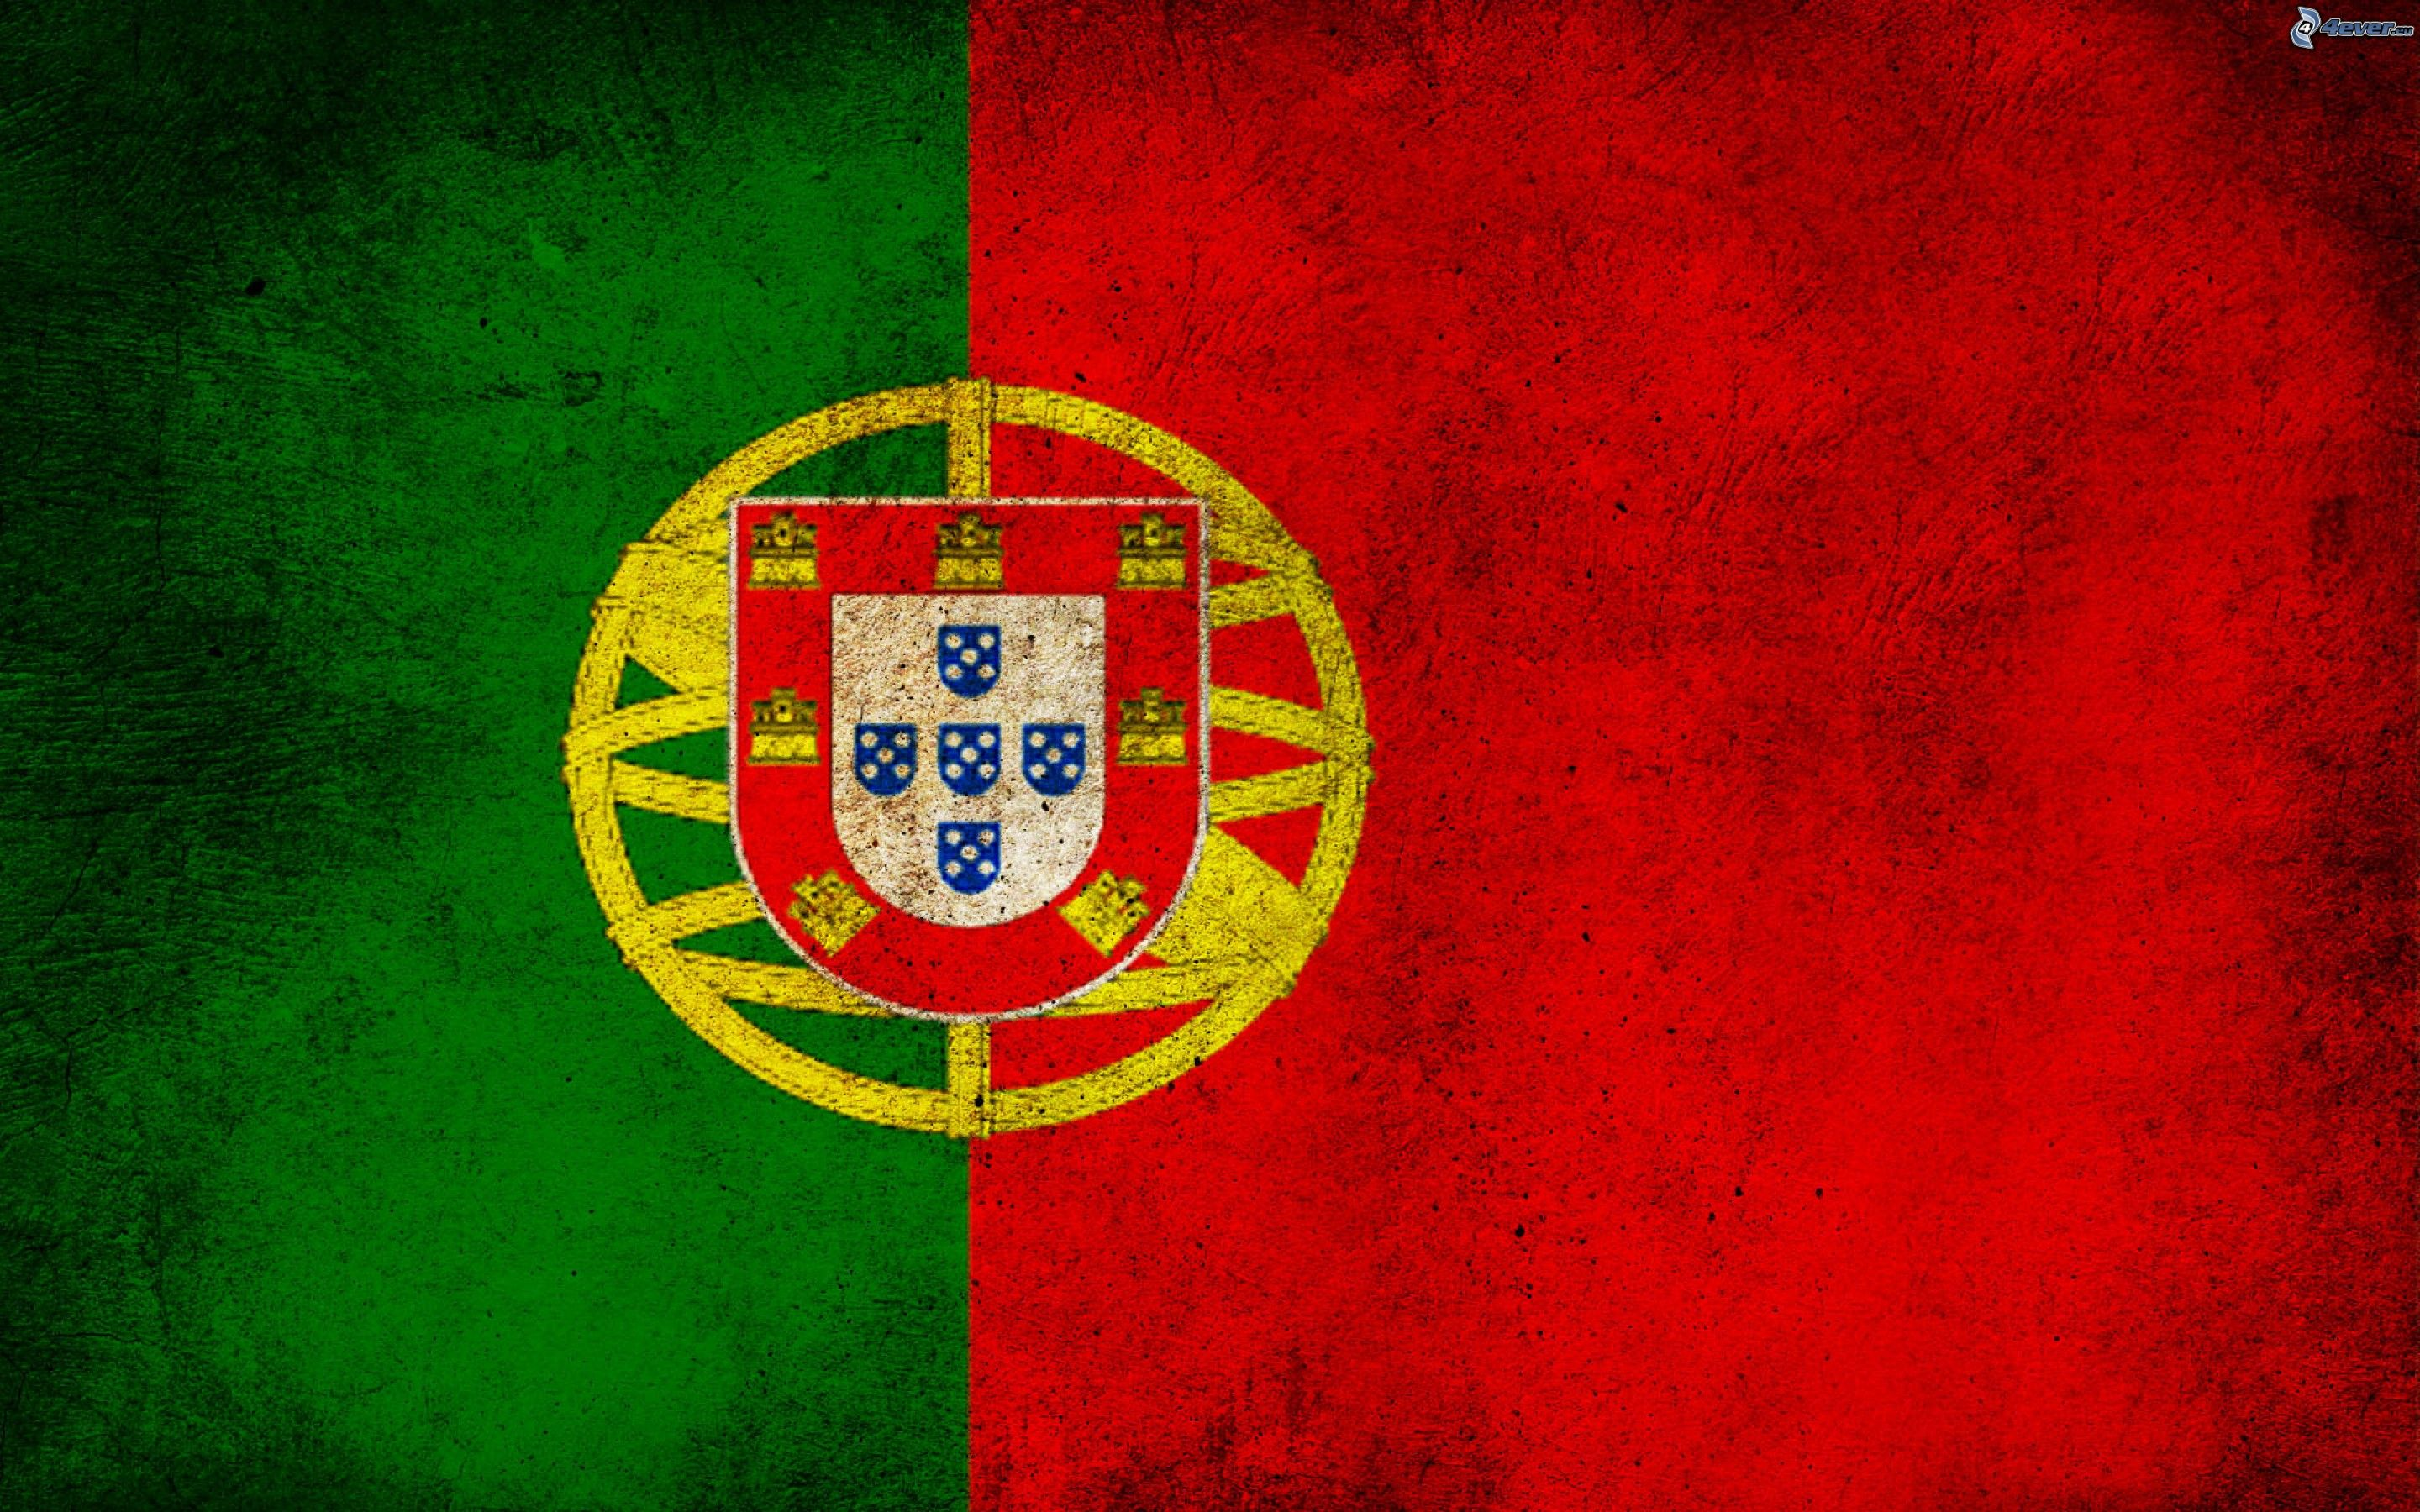 usa map app with Portuguese Flag 198450 on 587372325293260804 likewise 891226088766701568 likewise Royalty Free Stock Photos Usa Logo Image4698958 furthermore Portuguese Flag 198450 likewise Tacobell.